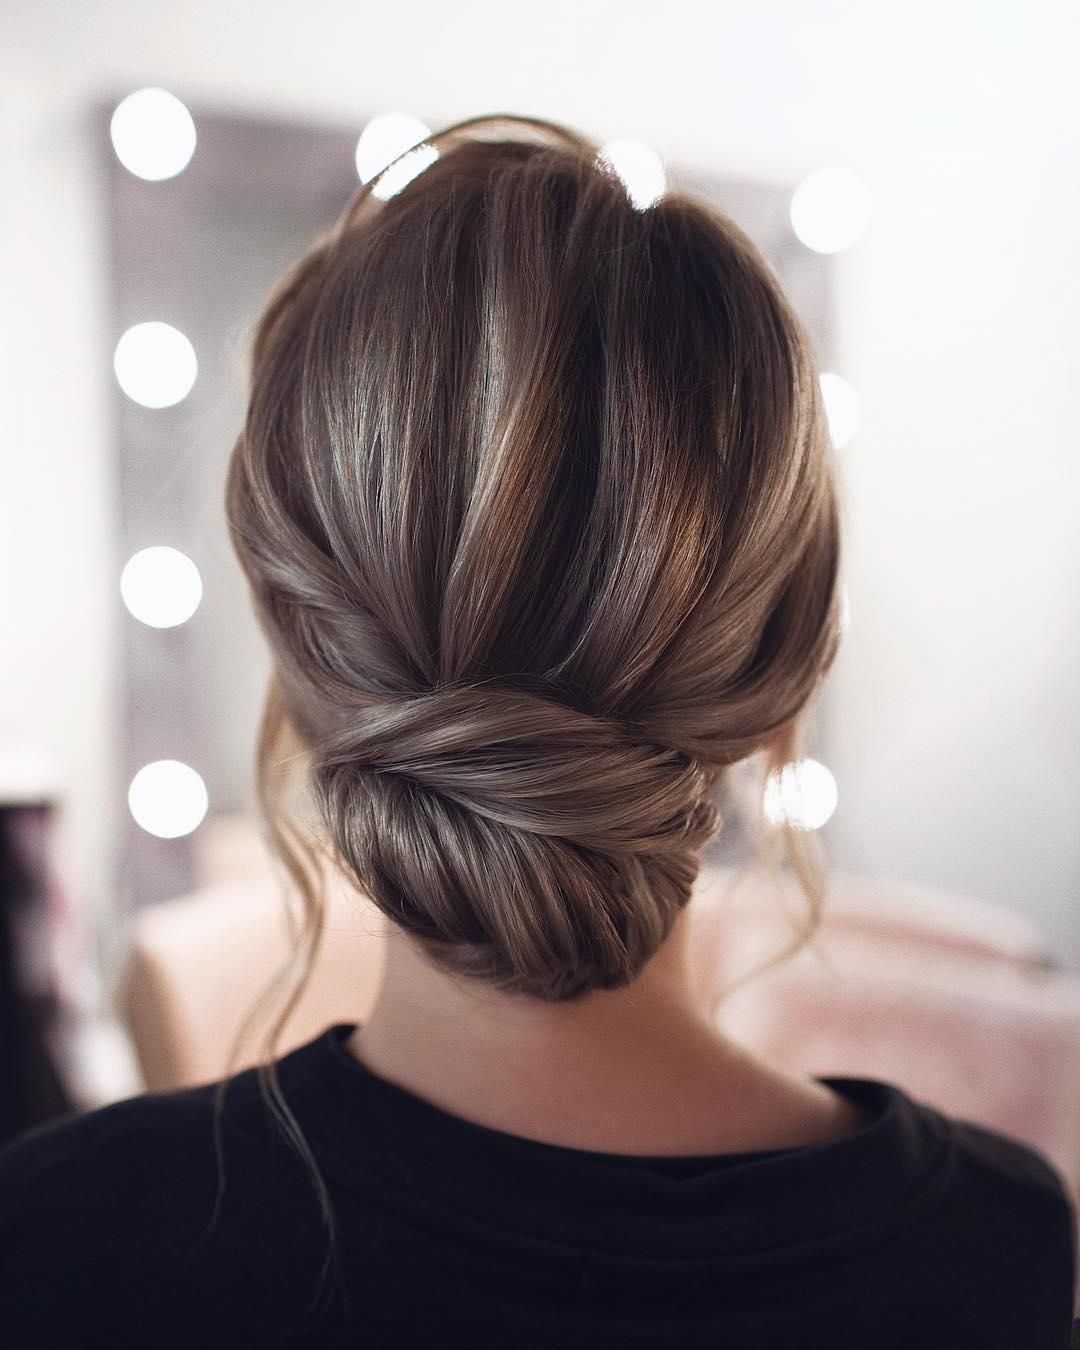 13 All Time Best Hairstyles For Round Faces Ideas Loose Bun Hairstyles Thick Hair Styles Long Hair Styles